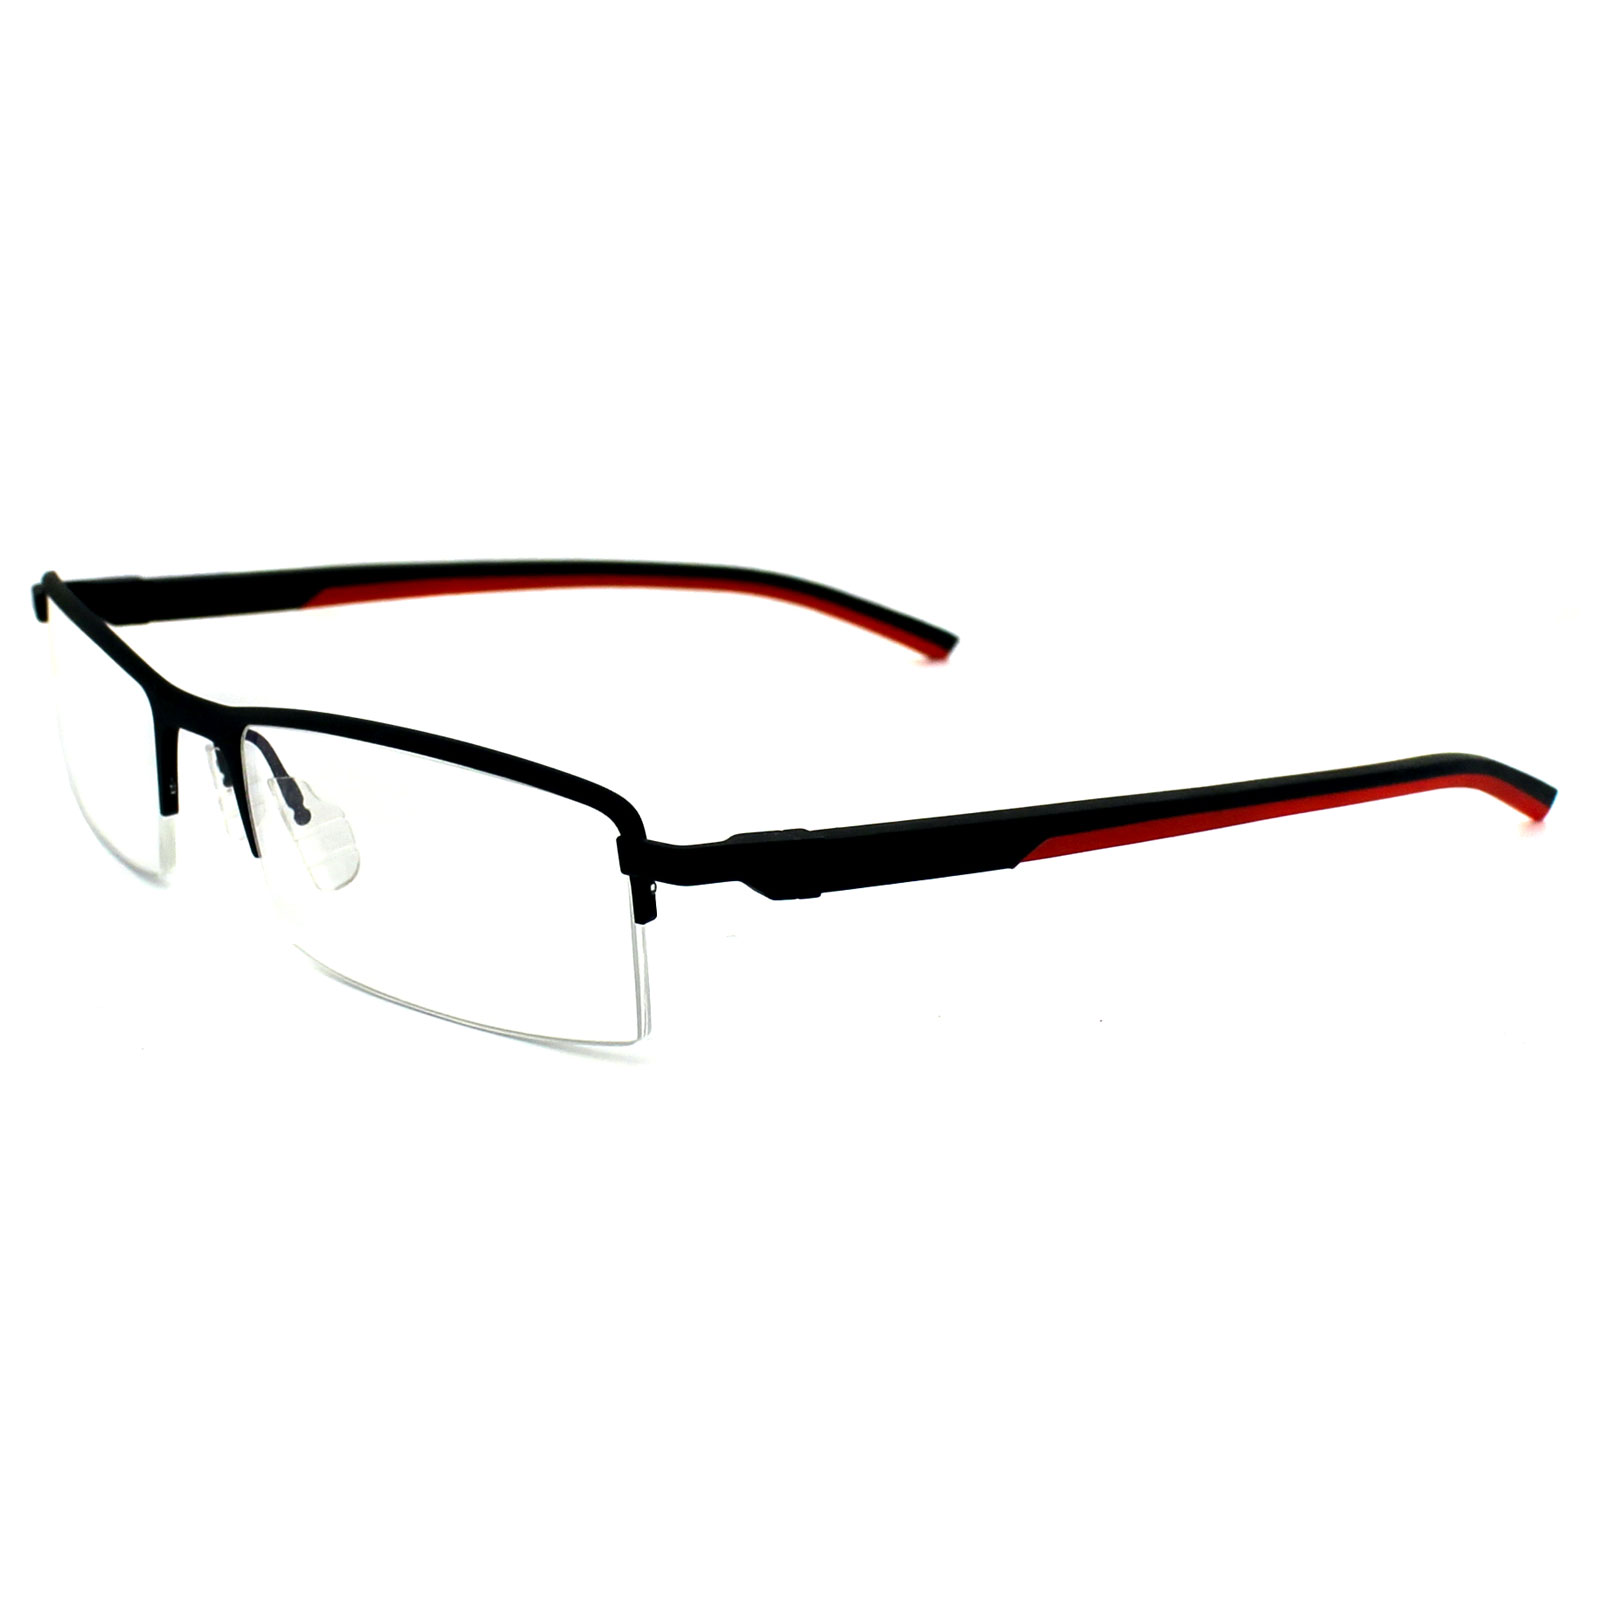 Tag Heuer Glasses Frames Automatic 0821 012 Matt Black & Red | eBay